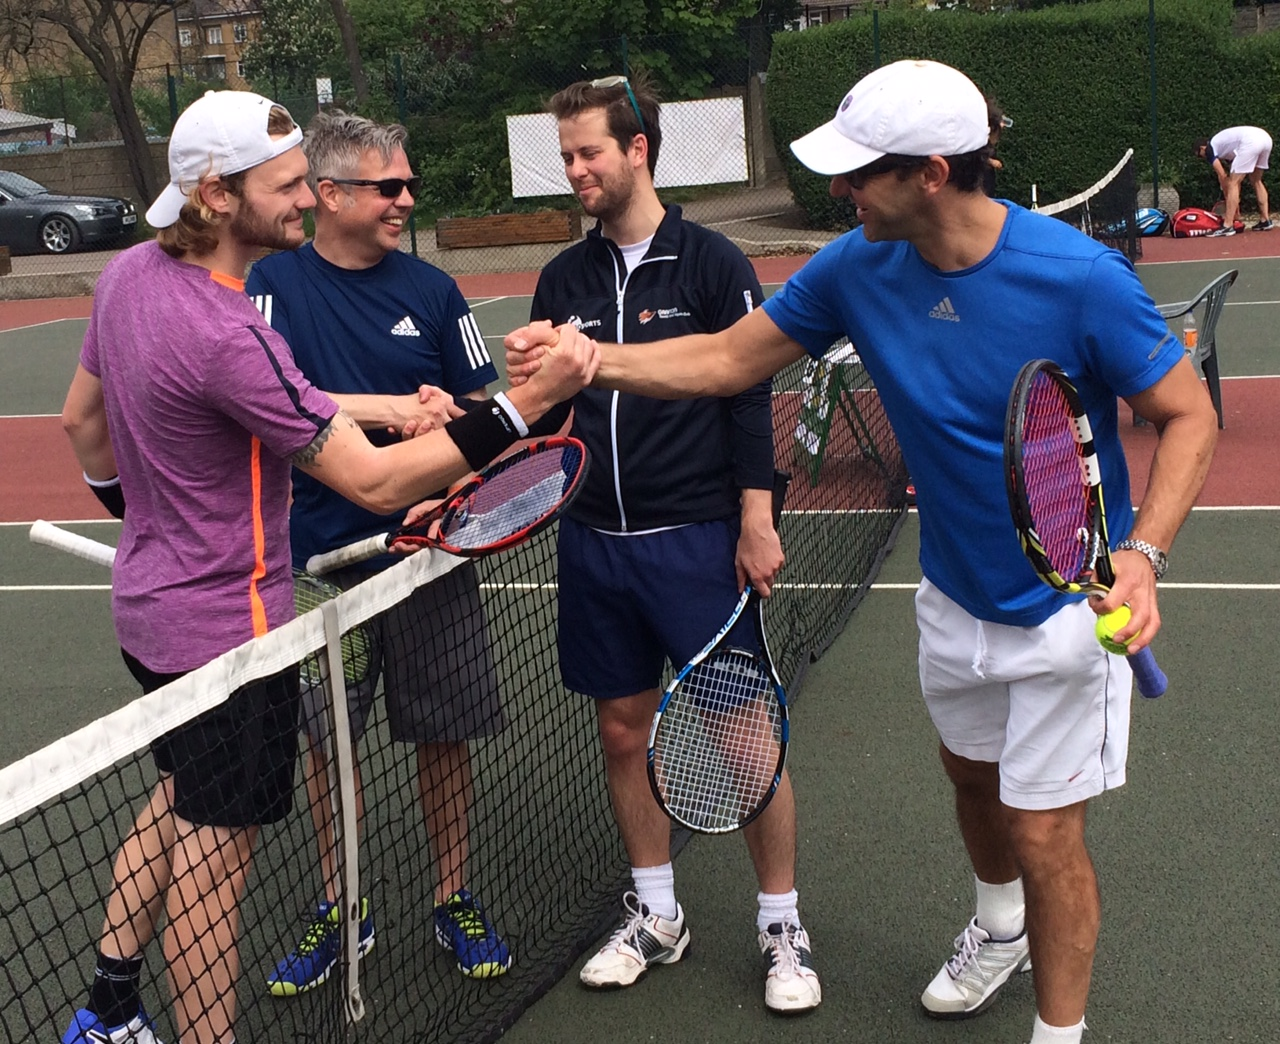 Millennium Cup is Streatham's local team tennis league!